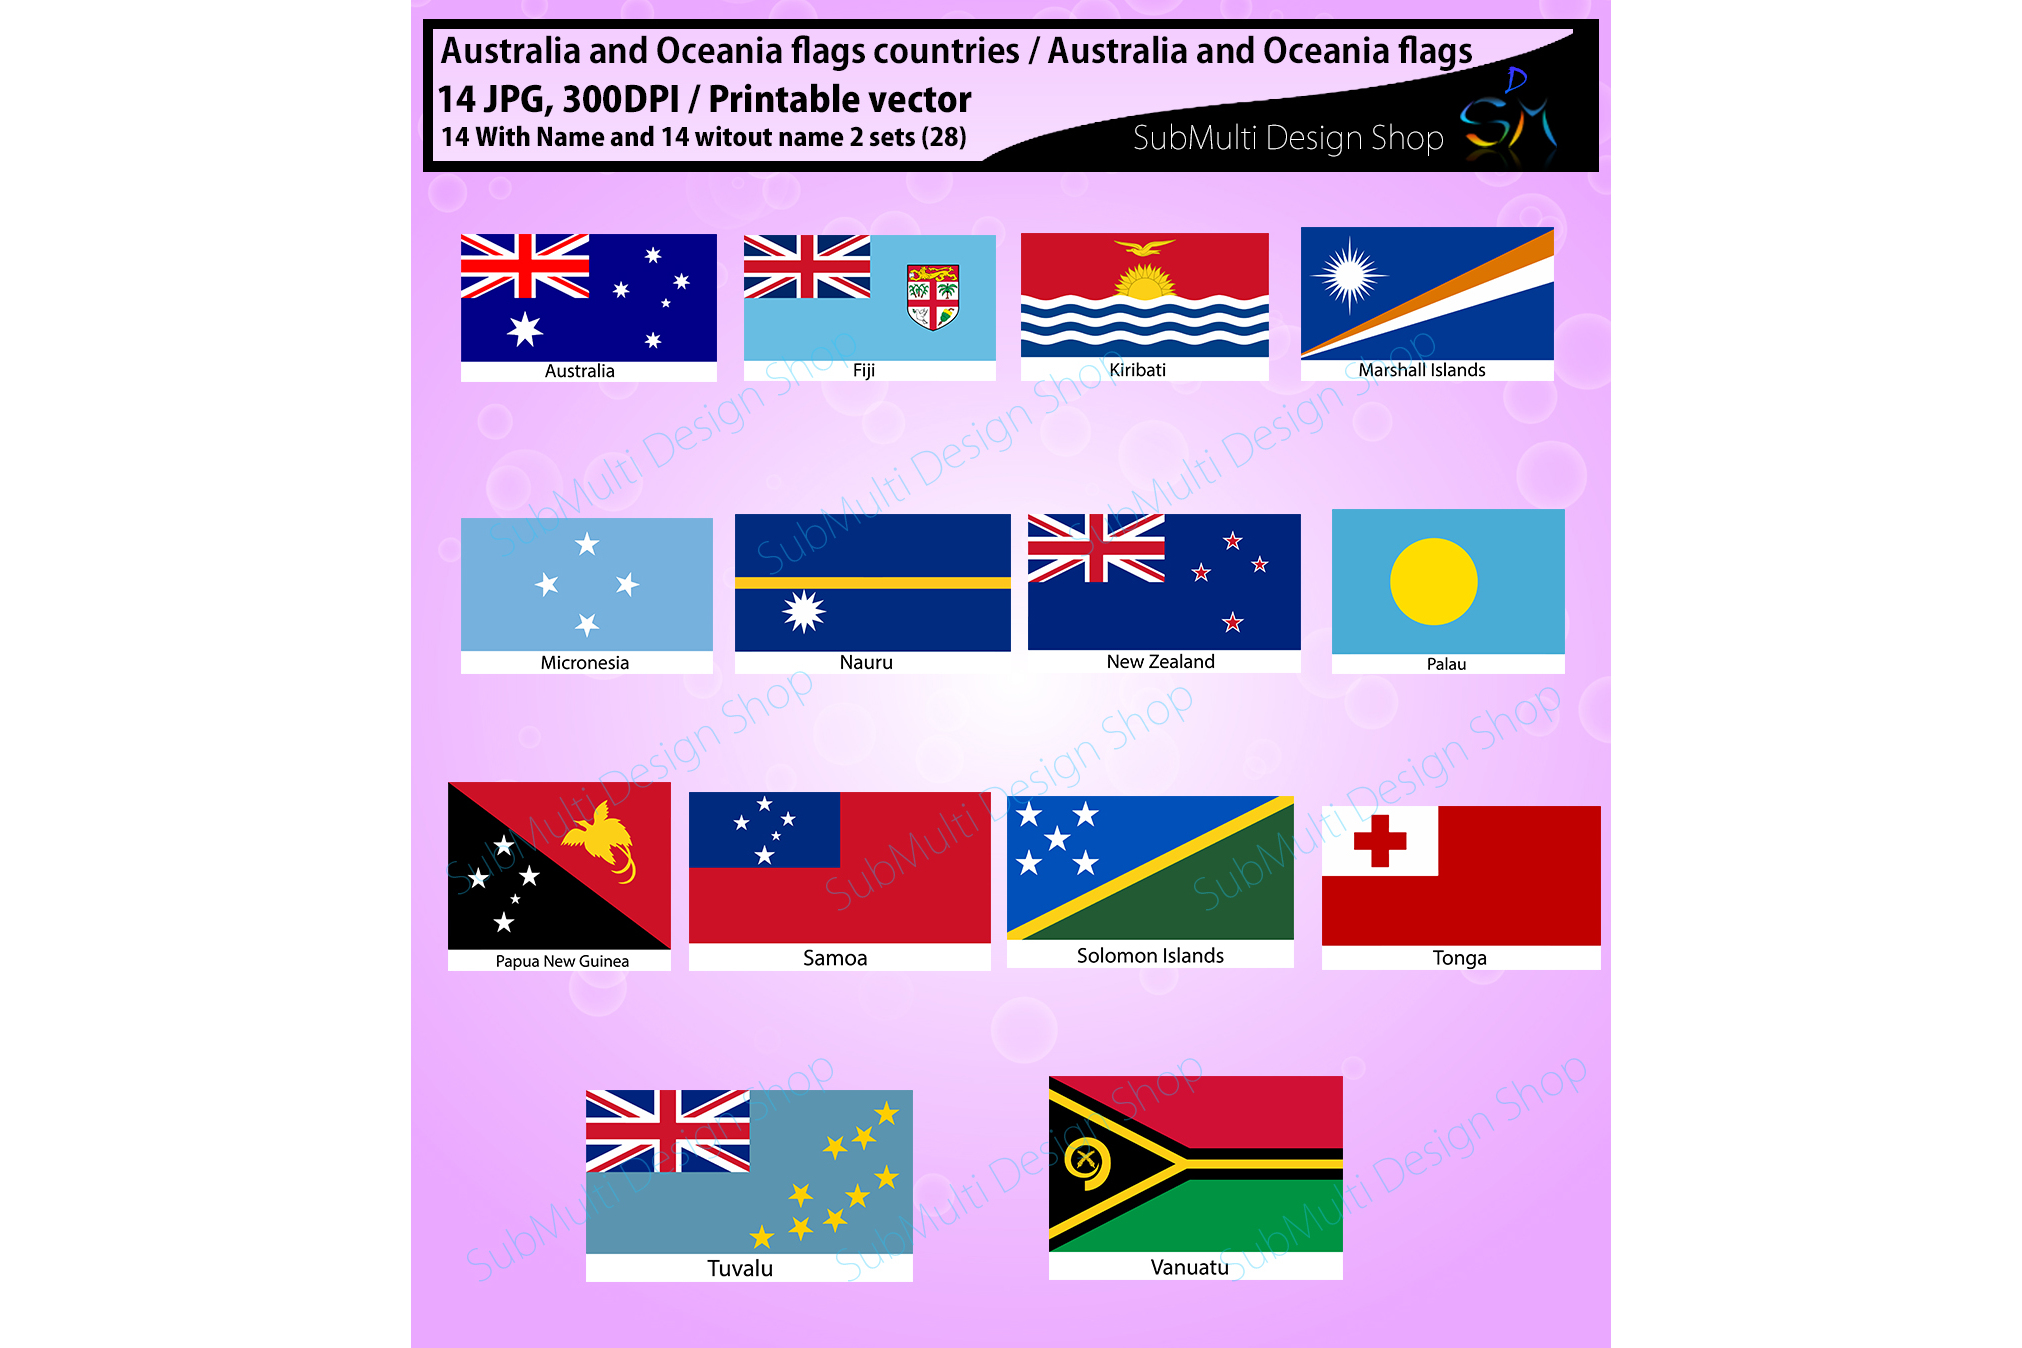 photo regarding Printable Flags identified as Australia and Oceania international locations Australia and Oceania flags Higher High quality flags flag clipart and silhouette printable flag